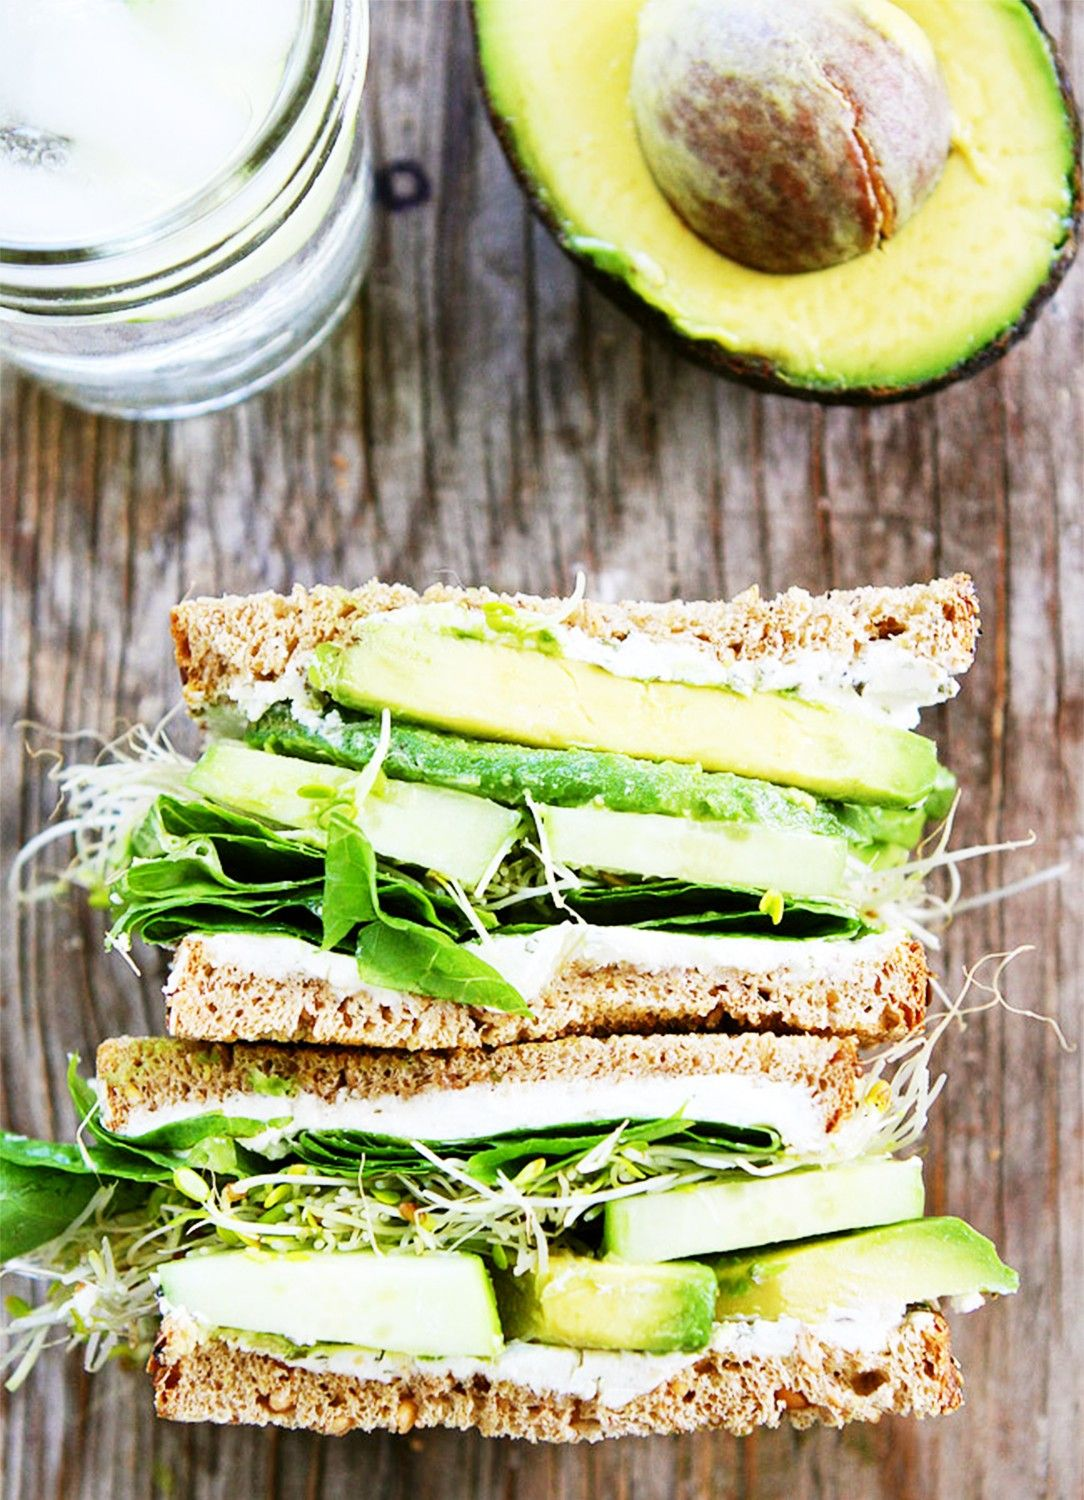 Best 25+ Fuel food ideas on Pinterest | Protein energy bites, Carbs in food and Ketogenic food list